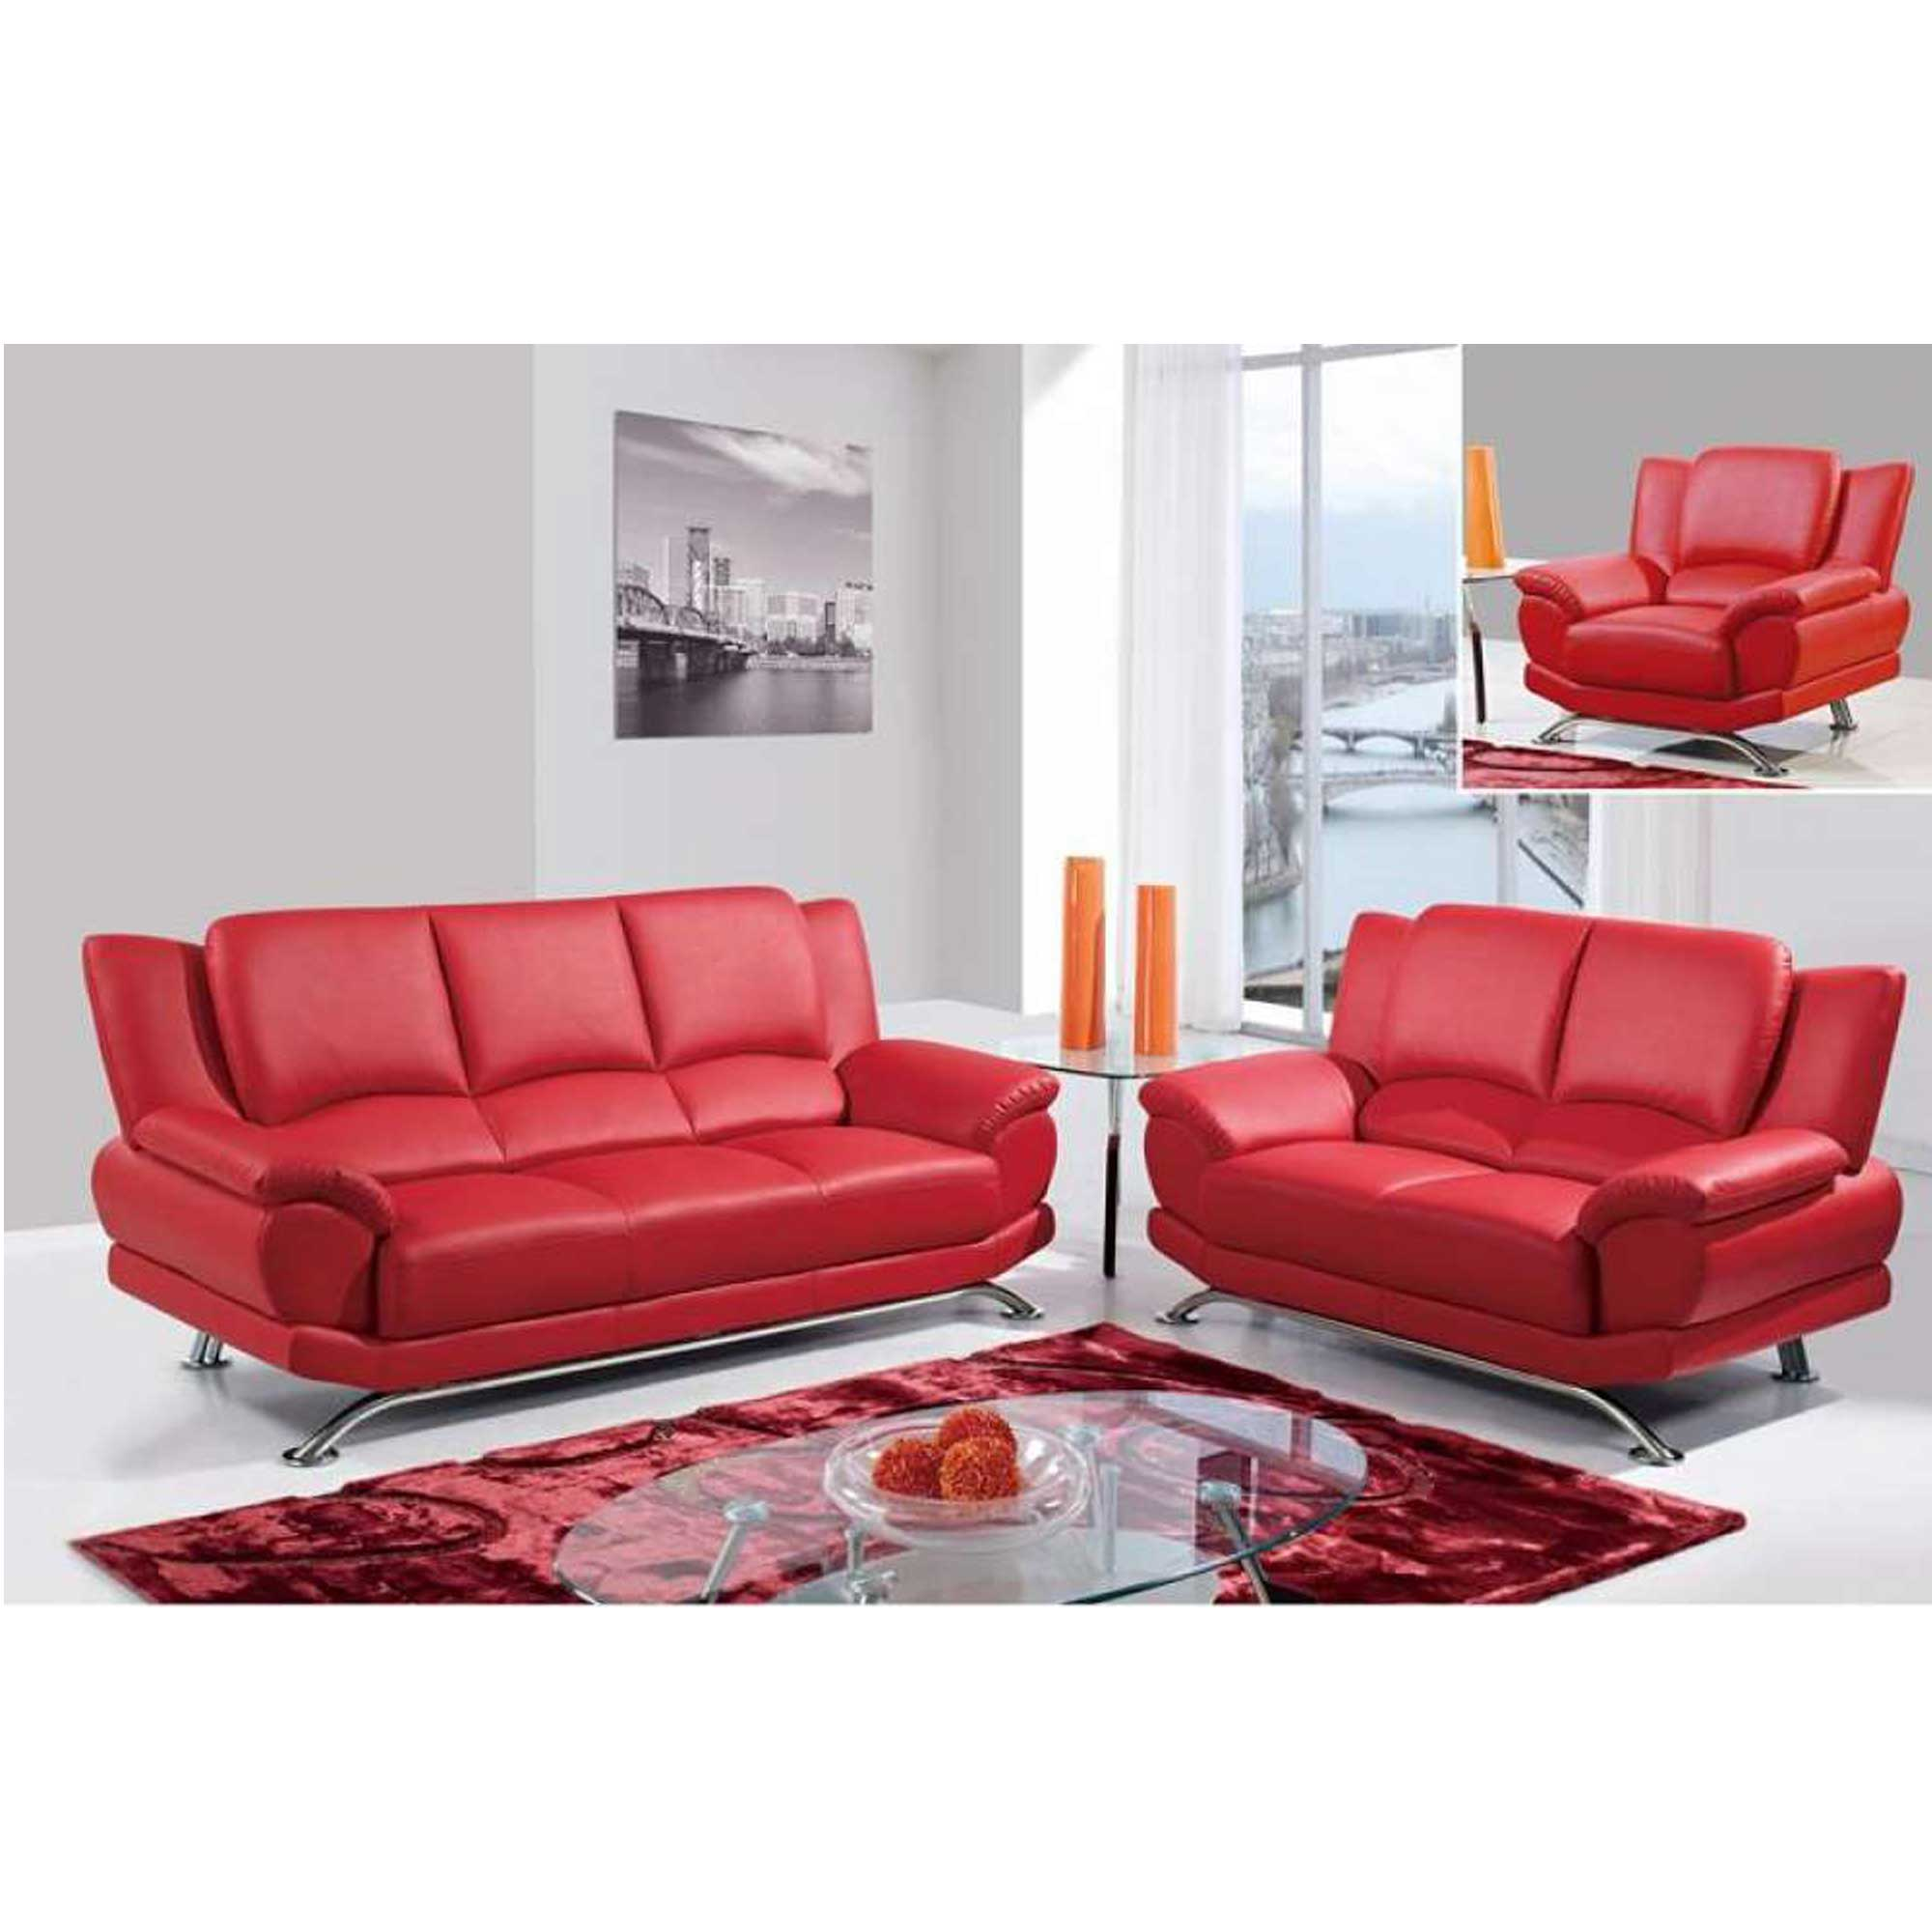 Sofa Amp Love Seat Red Home Deco